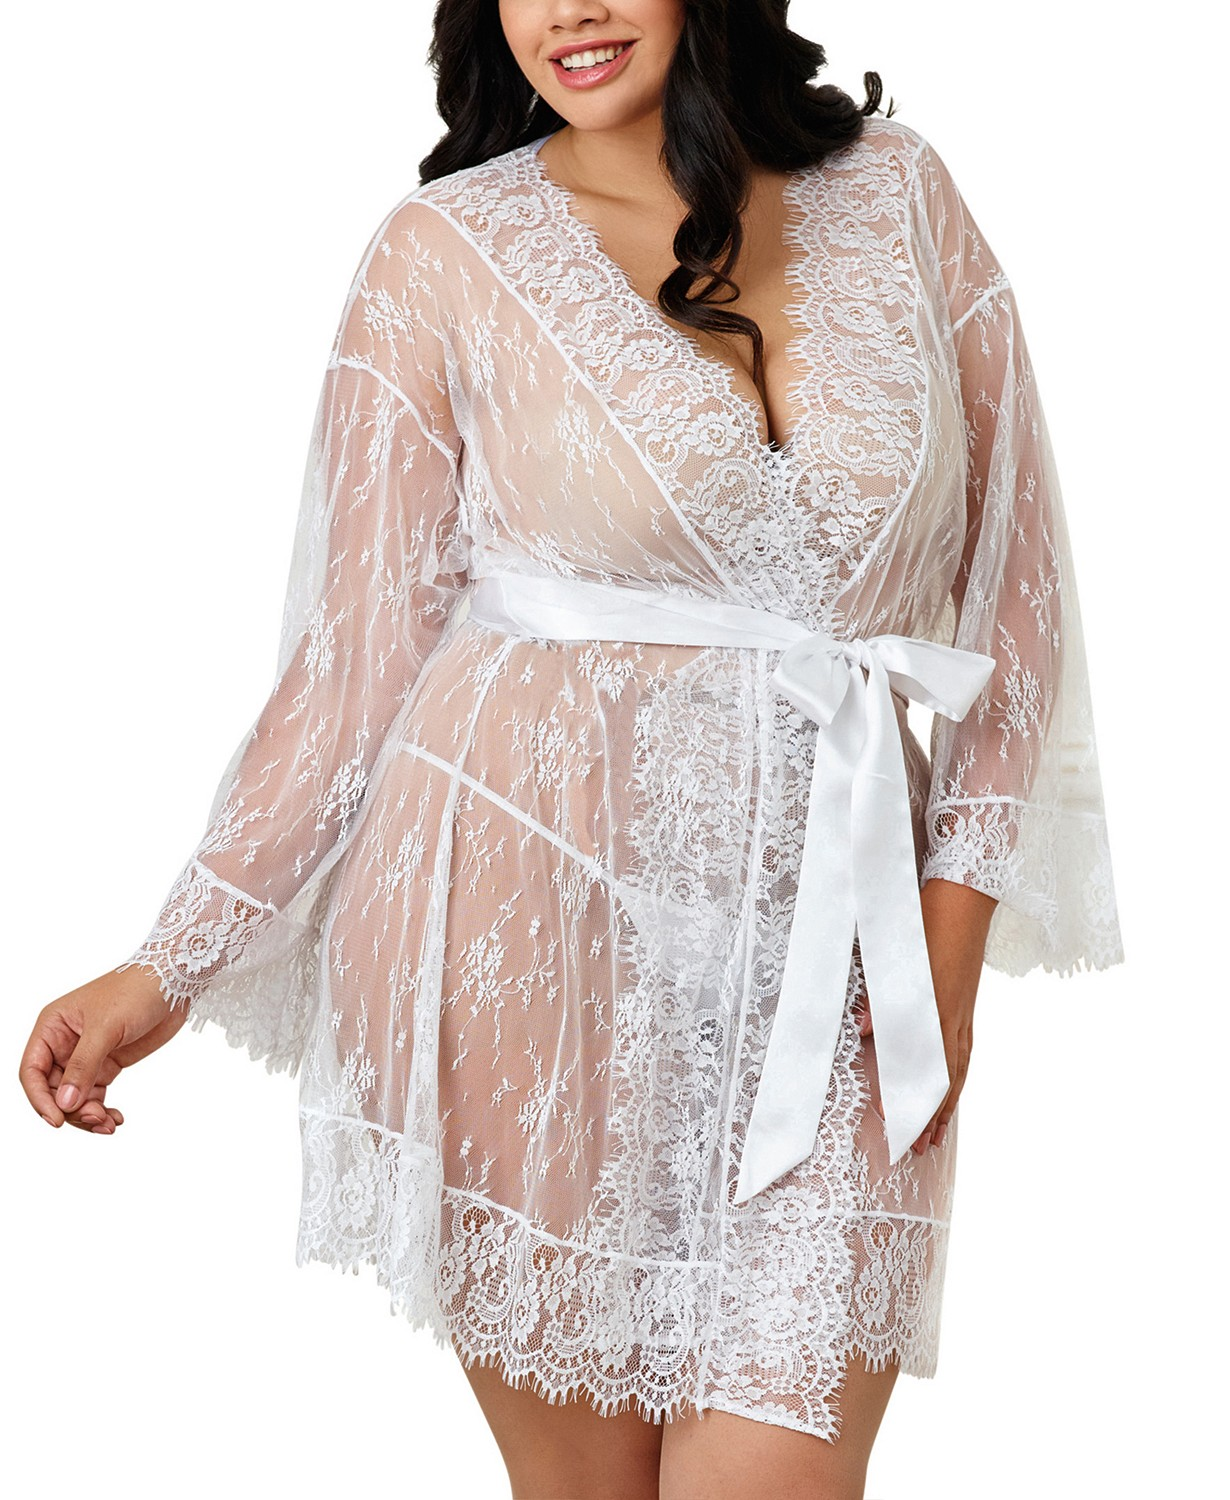 Woman modeling the Dreamgirl Plus-Size Lace Kimono Robe in white from Macy's